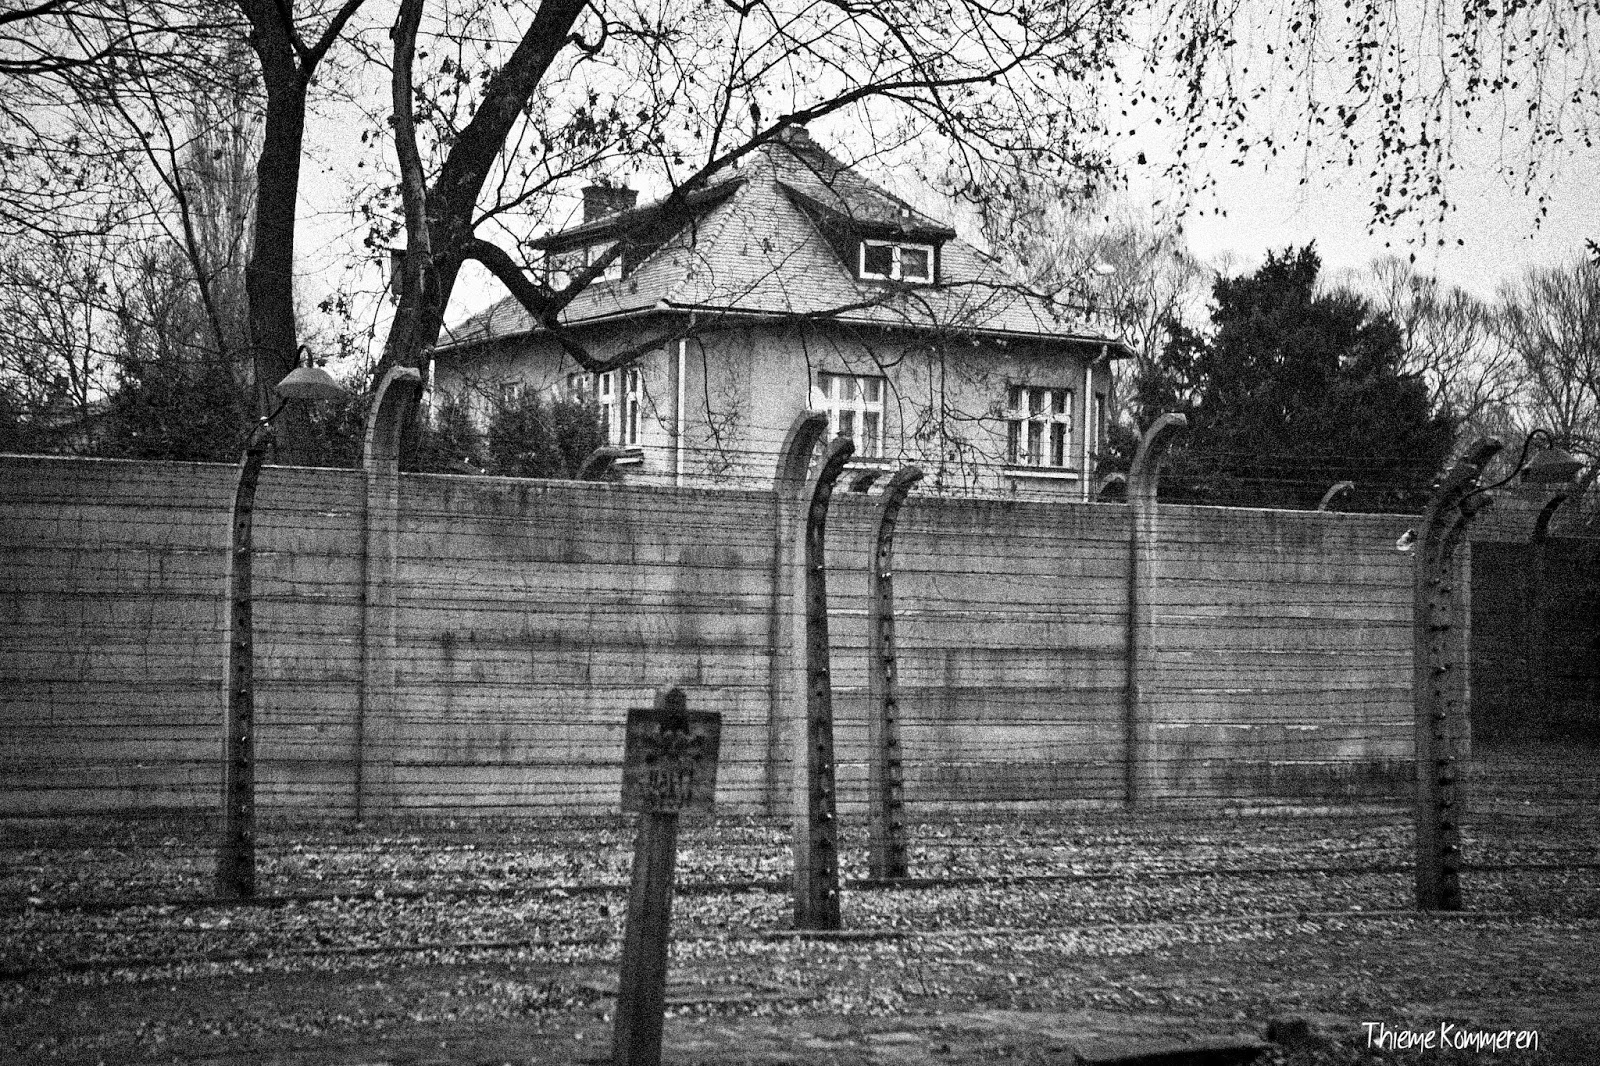 krakow and auschwitz birkenau thieme kommeren photography as you can see some windows look directly over the camp no secrets at all makes you think about boy in the striped pyjamas doesn t it